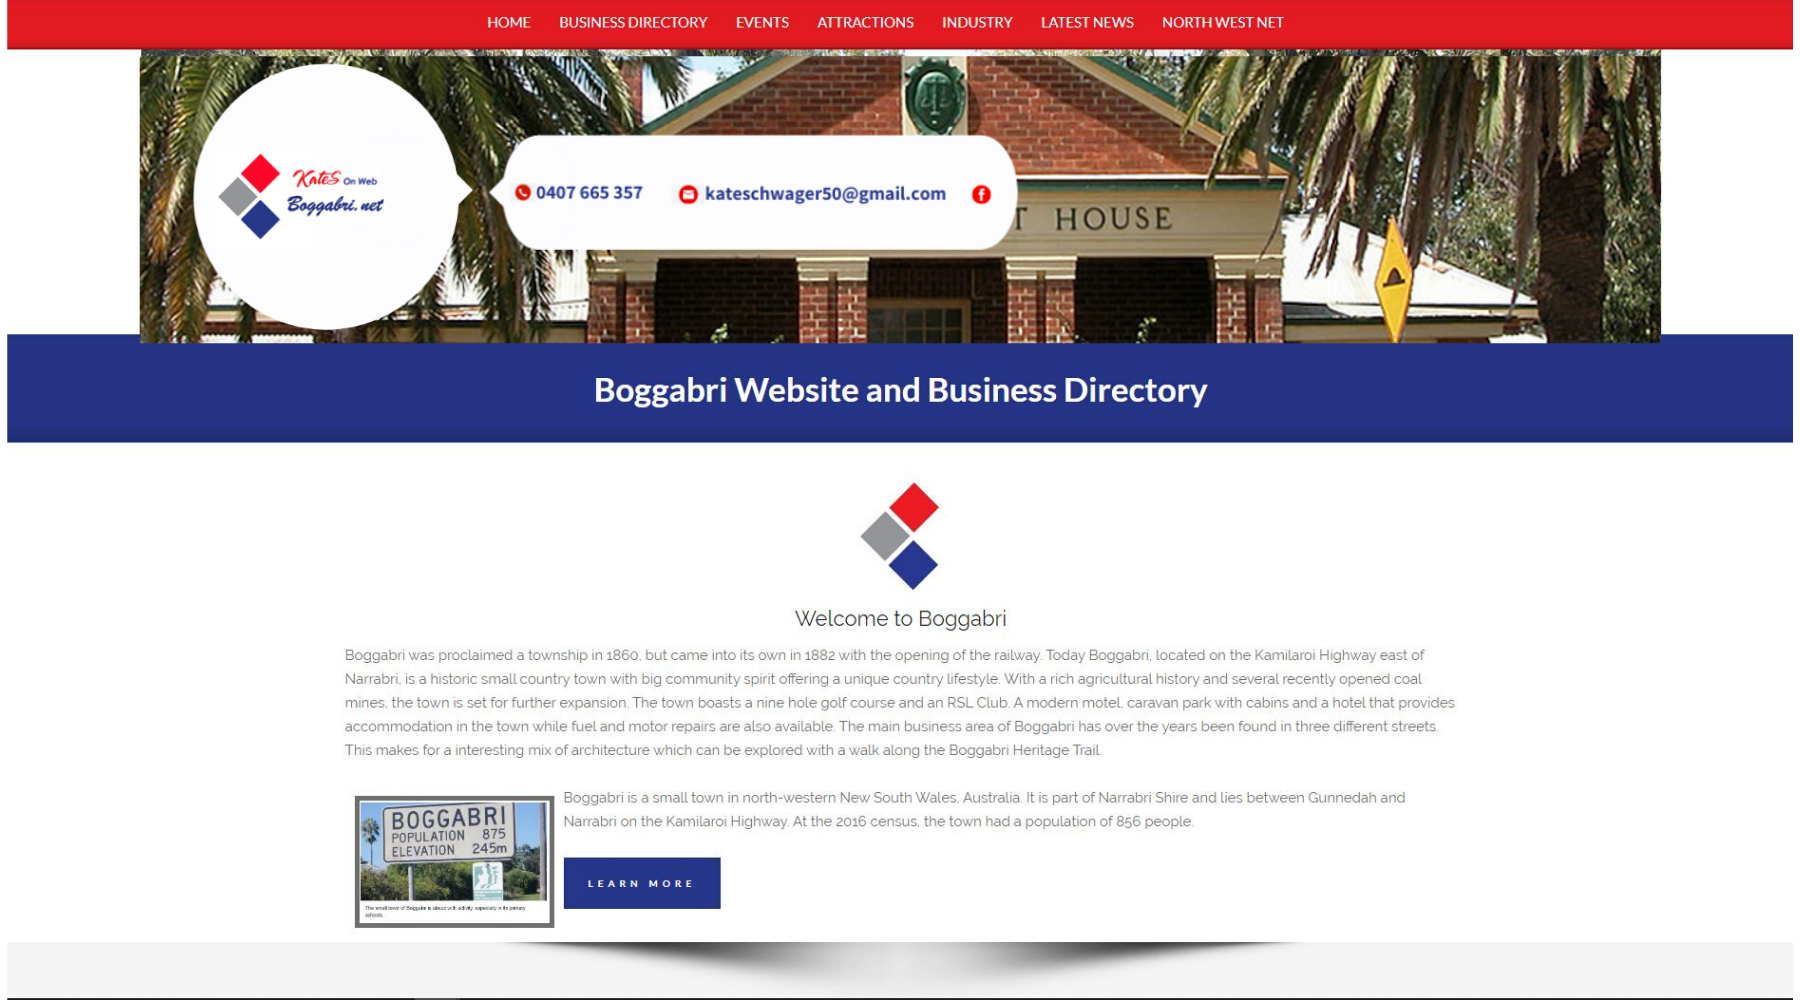 Boggabri Website Coming Soon...